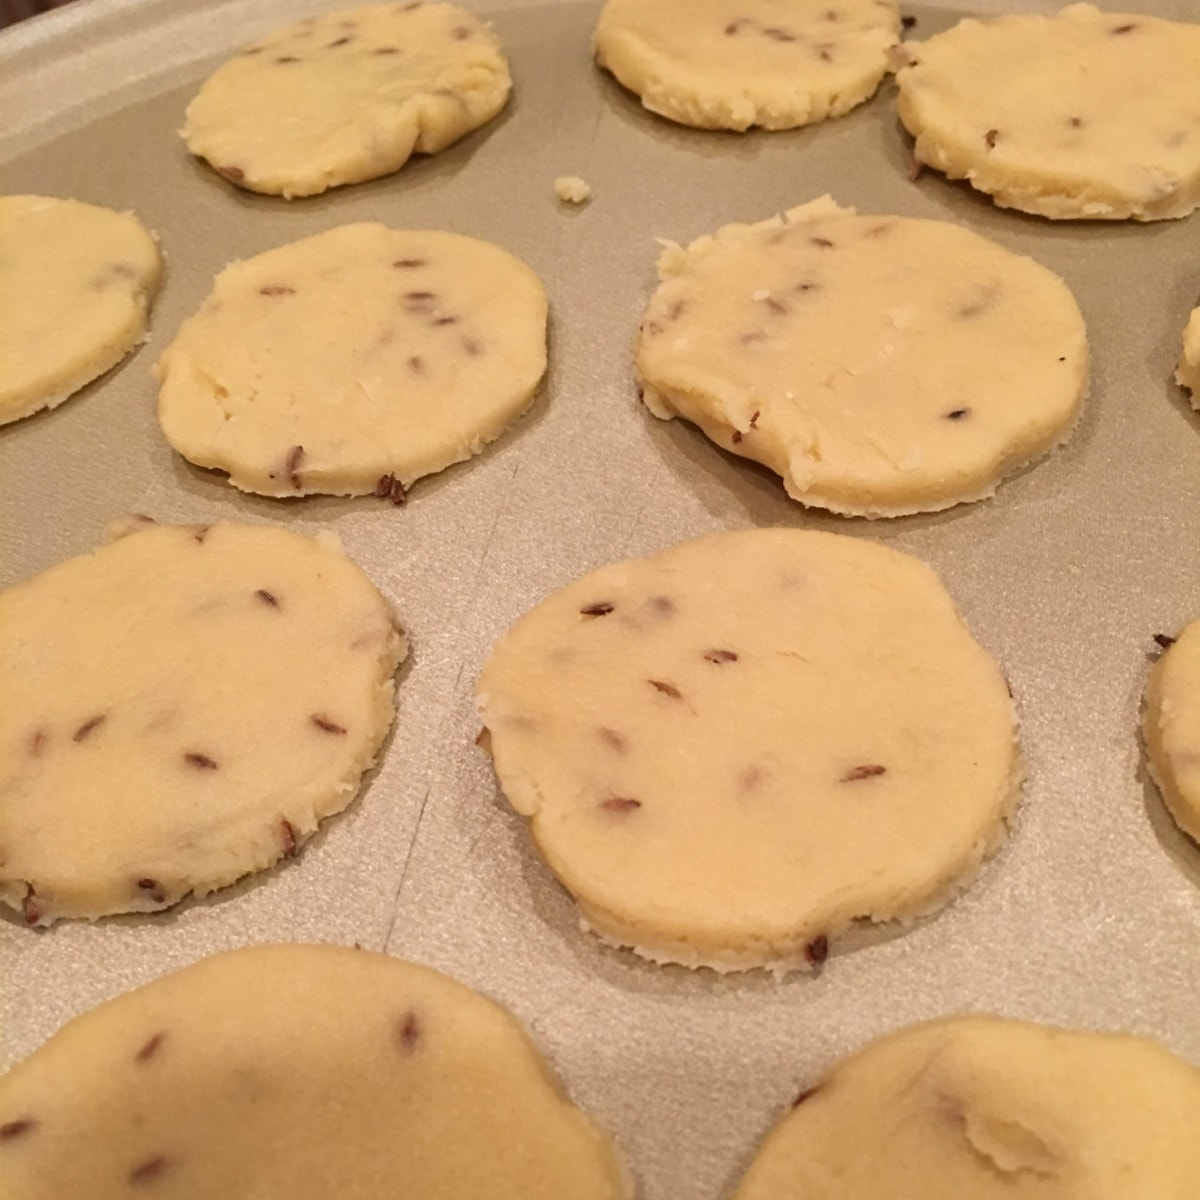 Right before they go into the oven